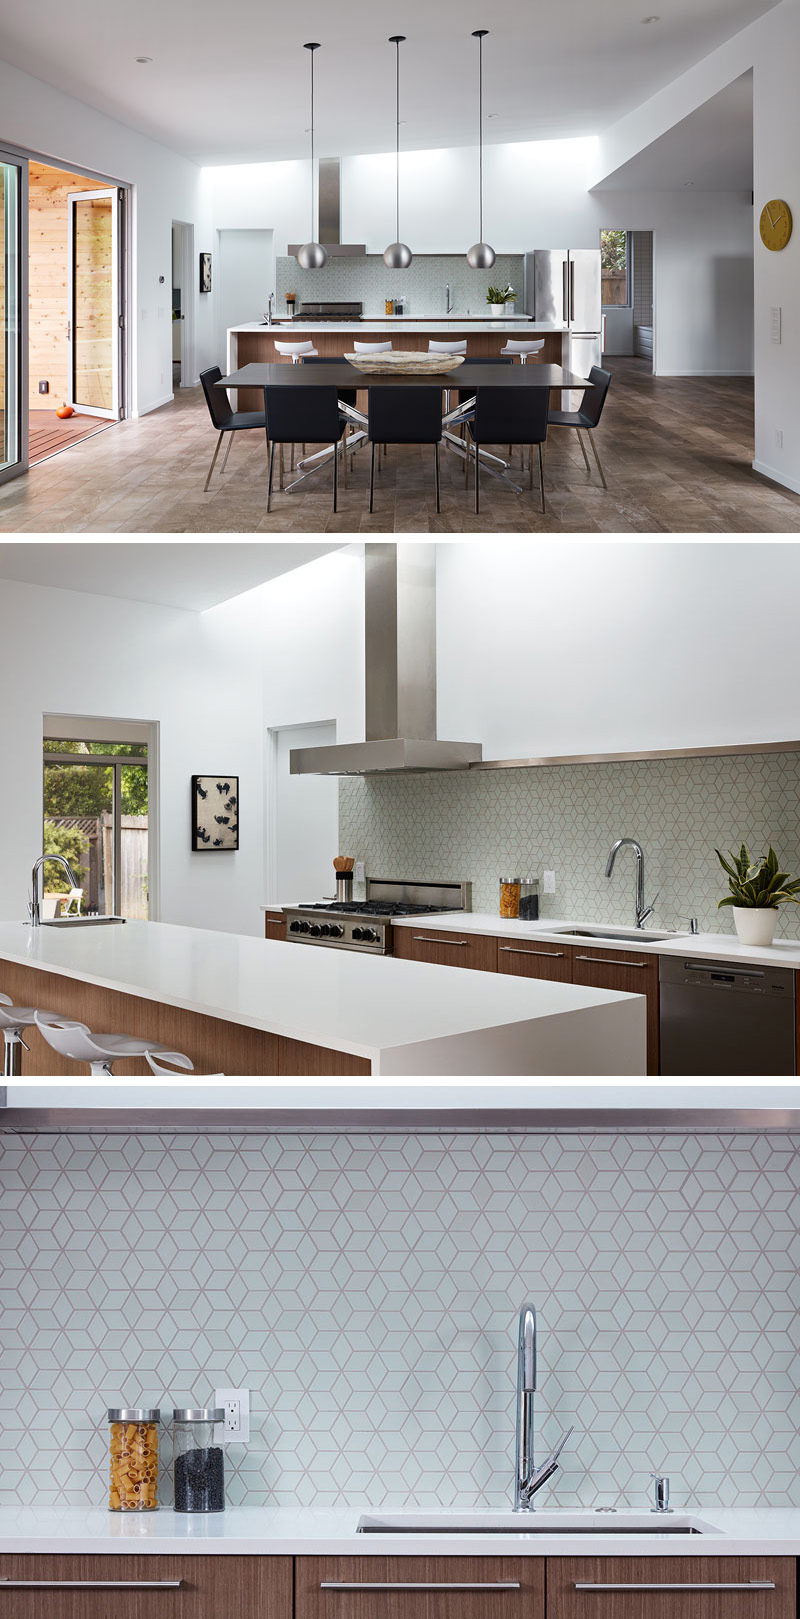 Inside this renovated house, the kitchen and dining area are separated by a large white and wood island that has a prep sink, which matches the white countertops and wood cabinetry. Light blue, geometric tiles have been used as a backsplash for a light touch of color.